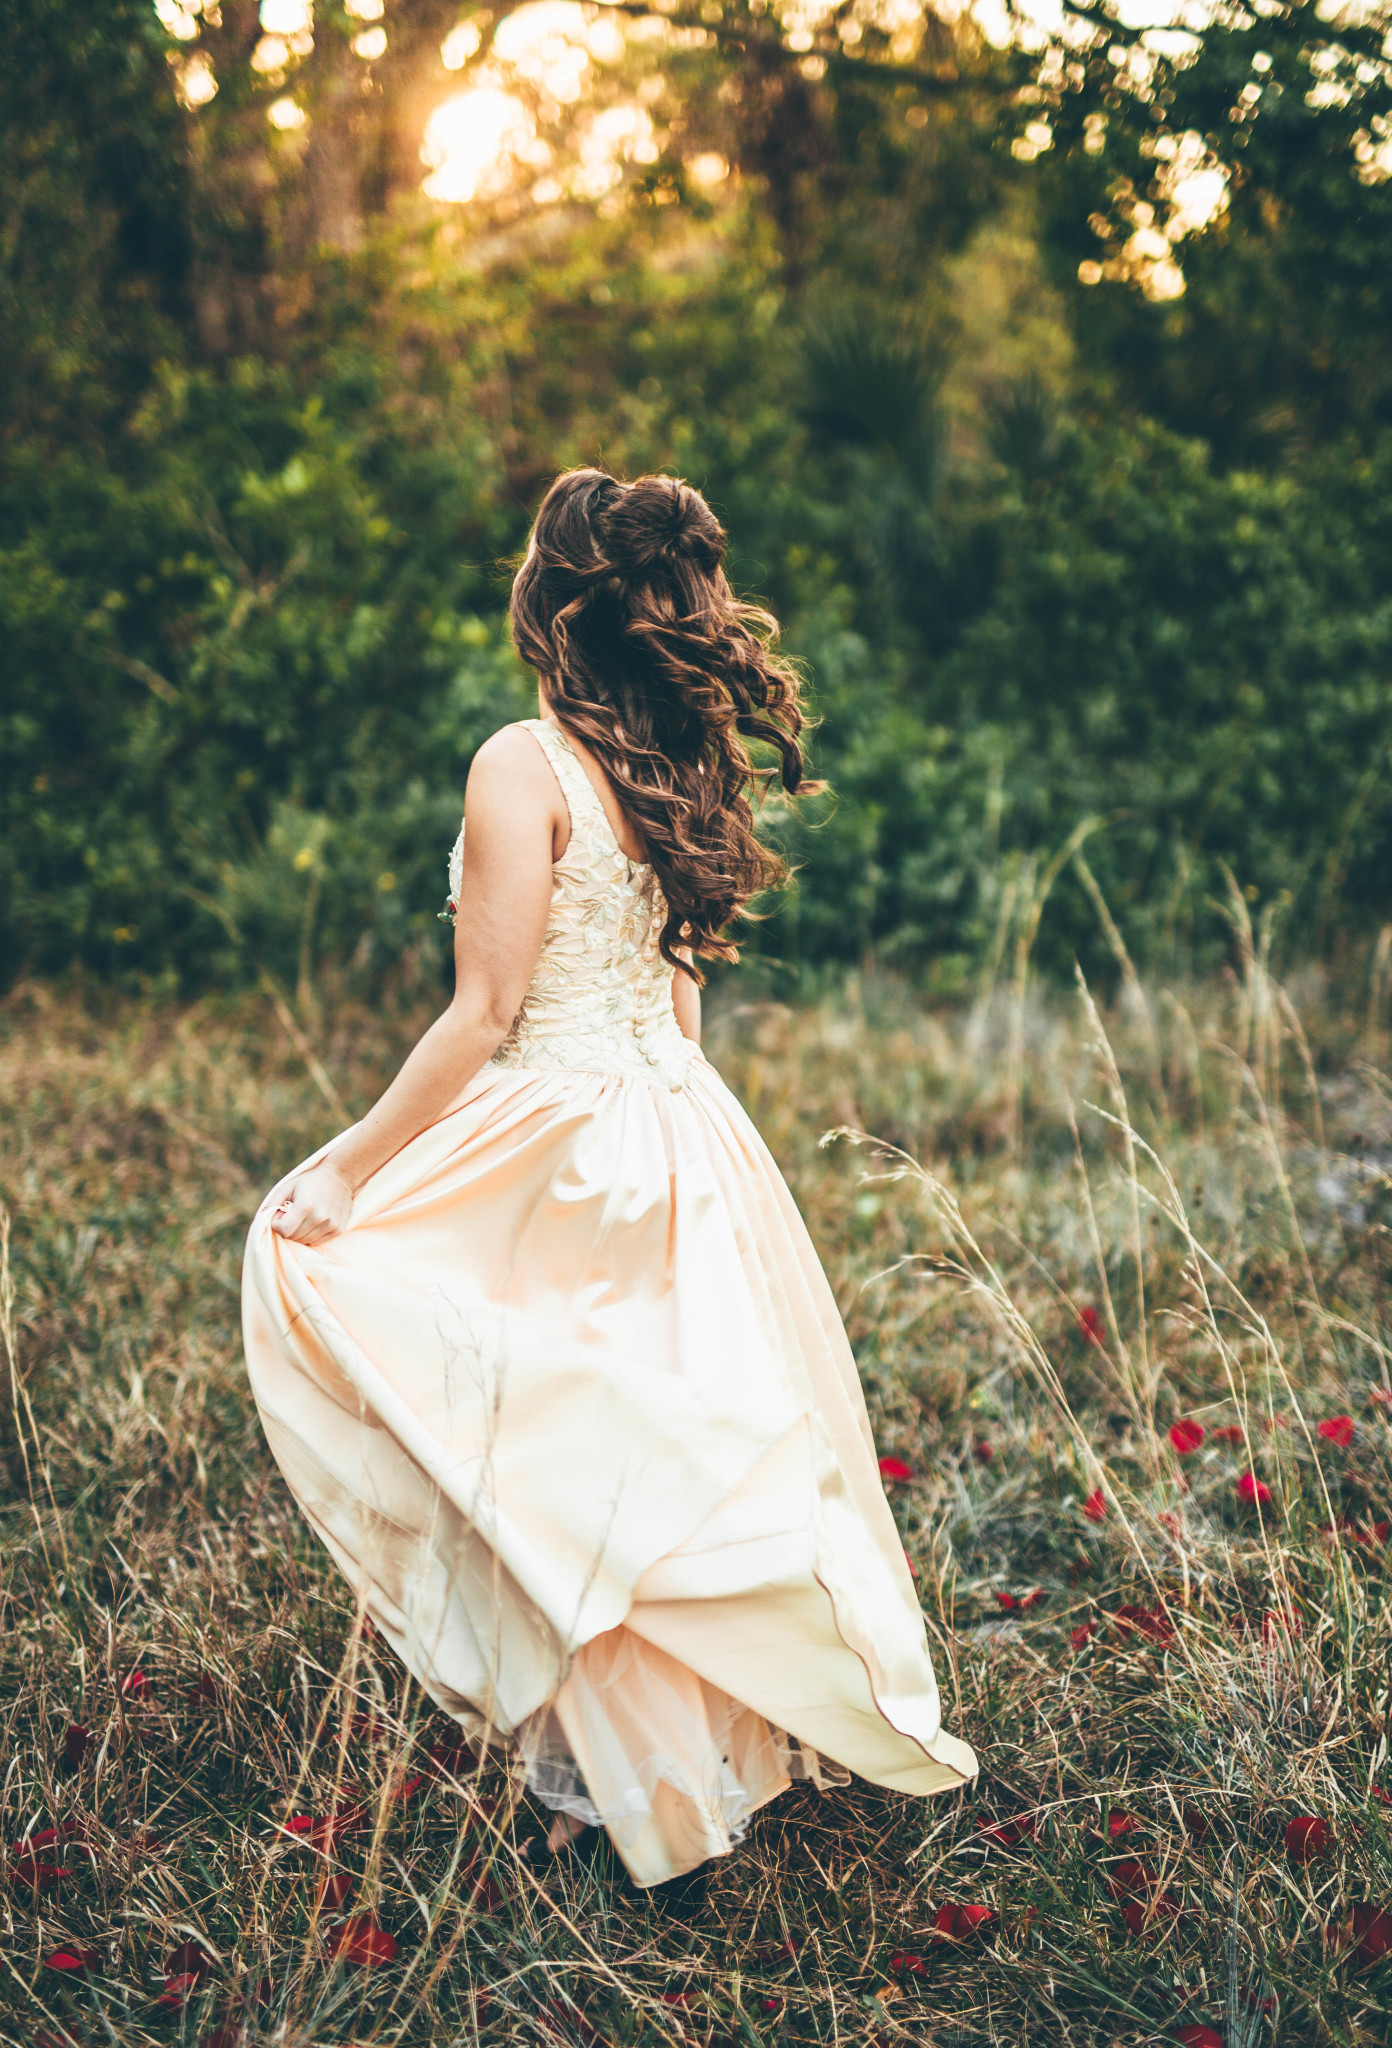 belle shoot lauren rita photography central florida photographer fairytale